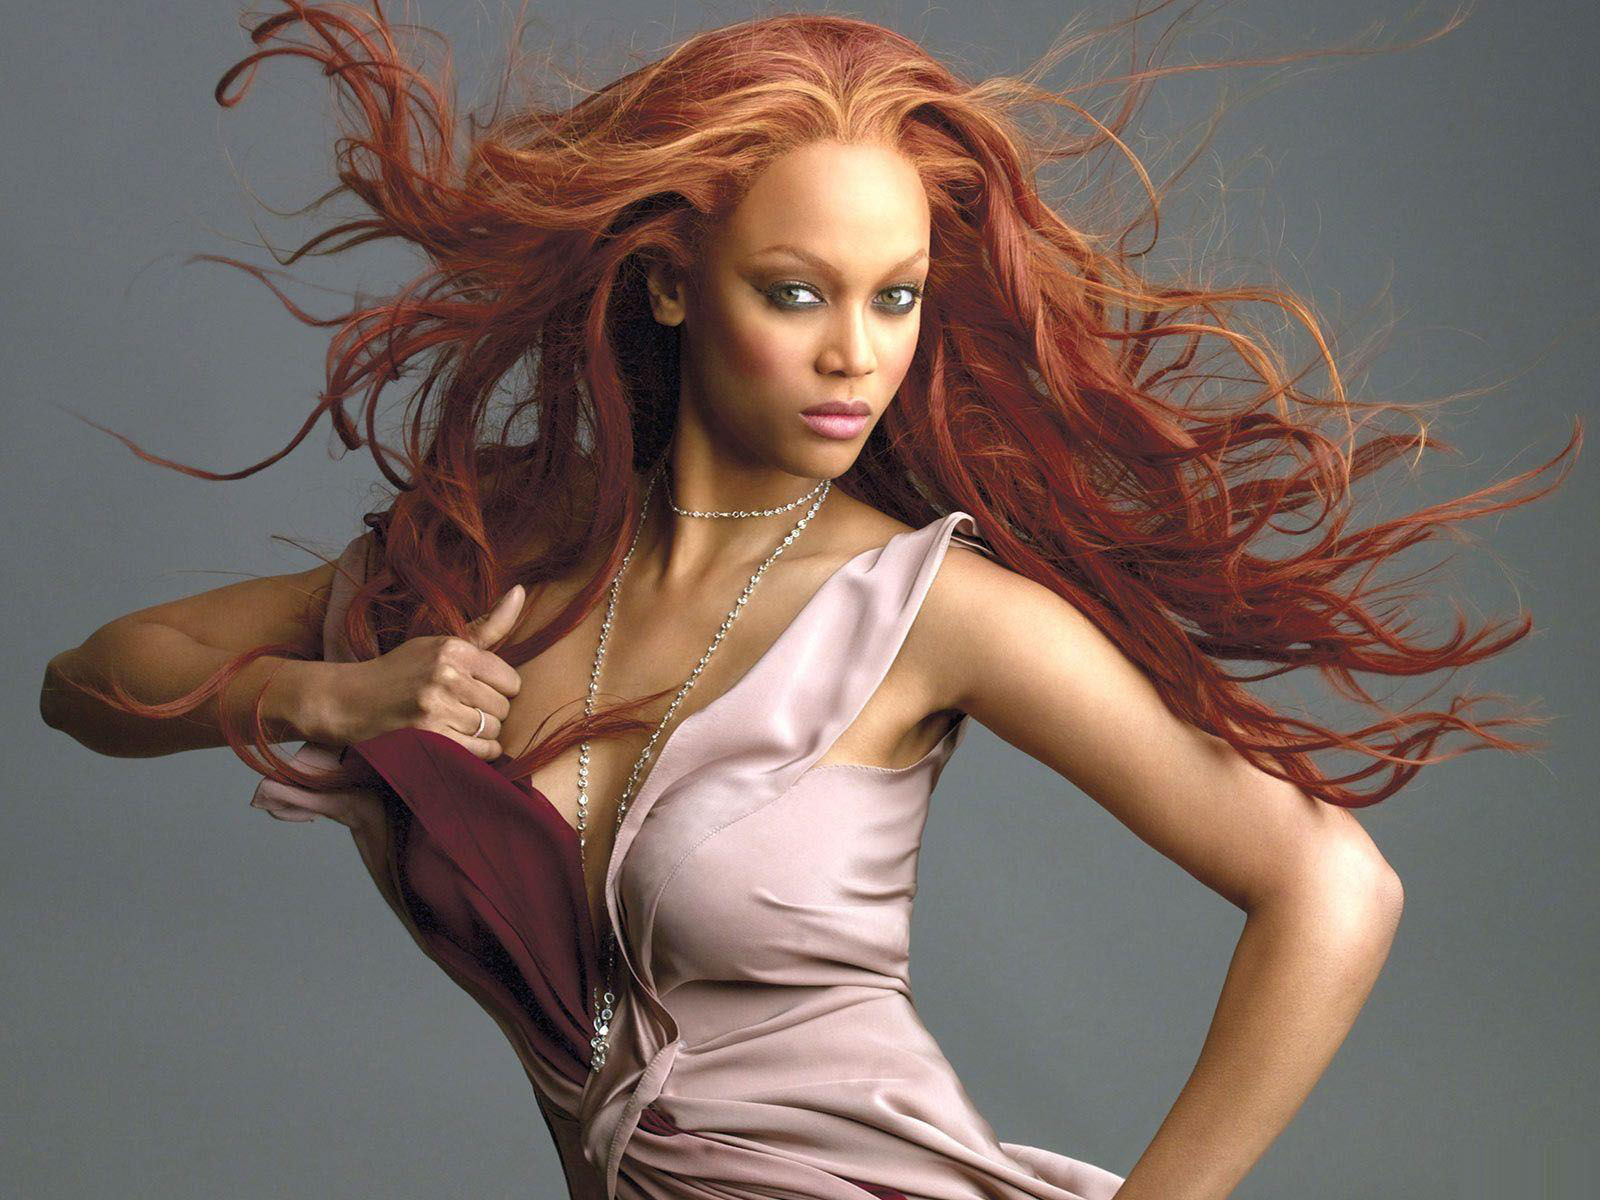 Tyra Banks Cool HD Wallpapers 2012 2013 ~ HOT CELEBRITY Emma Stone